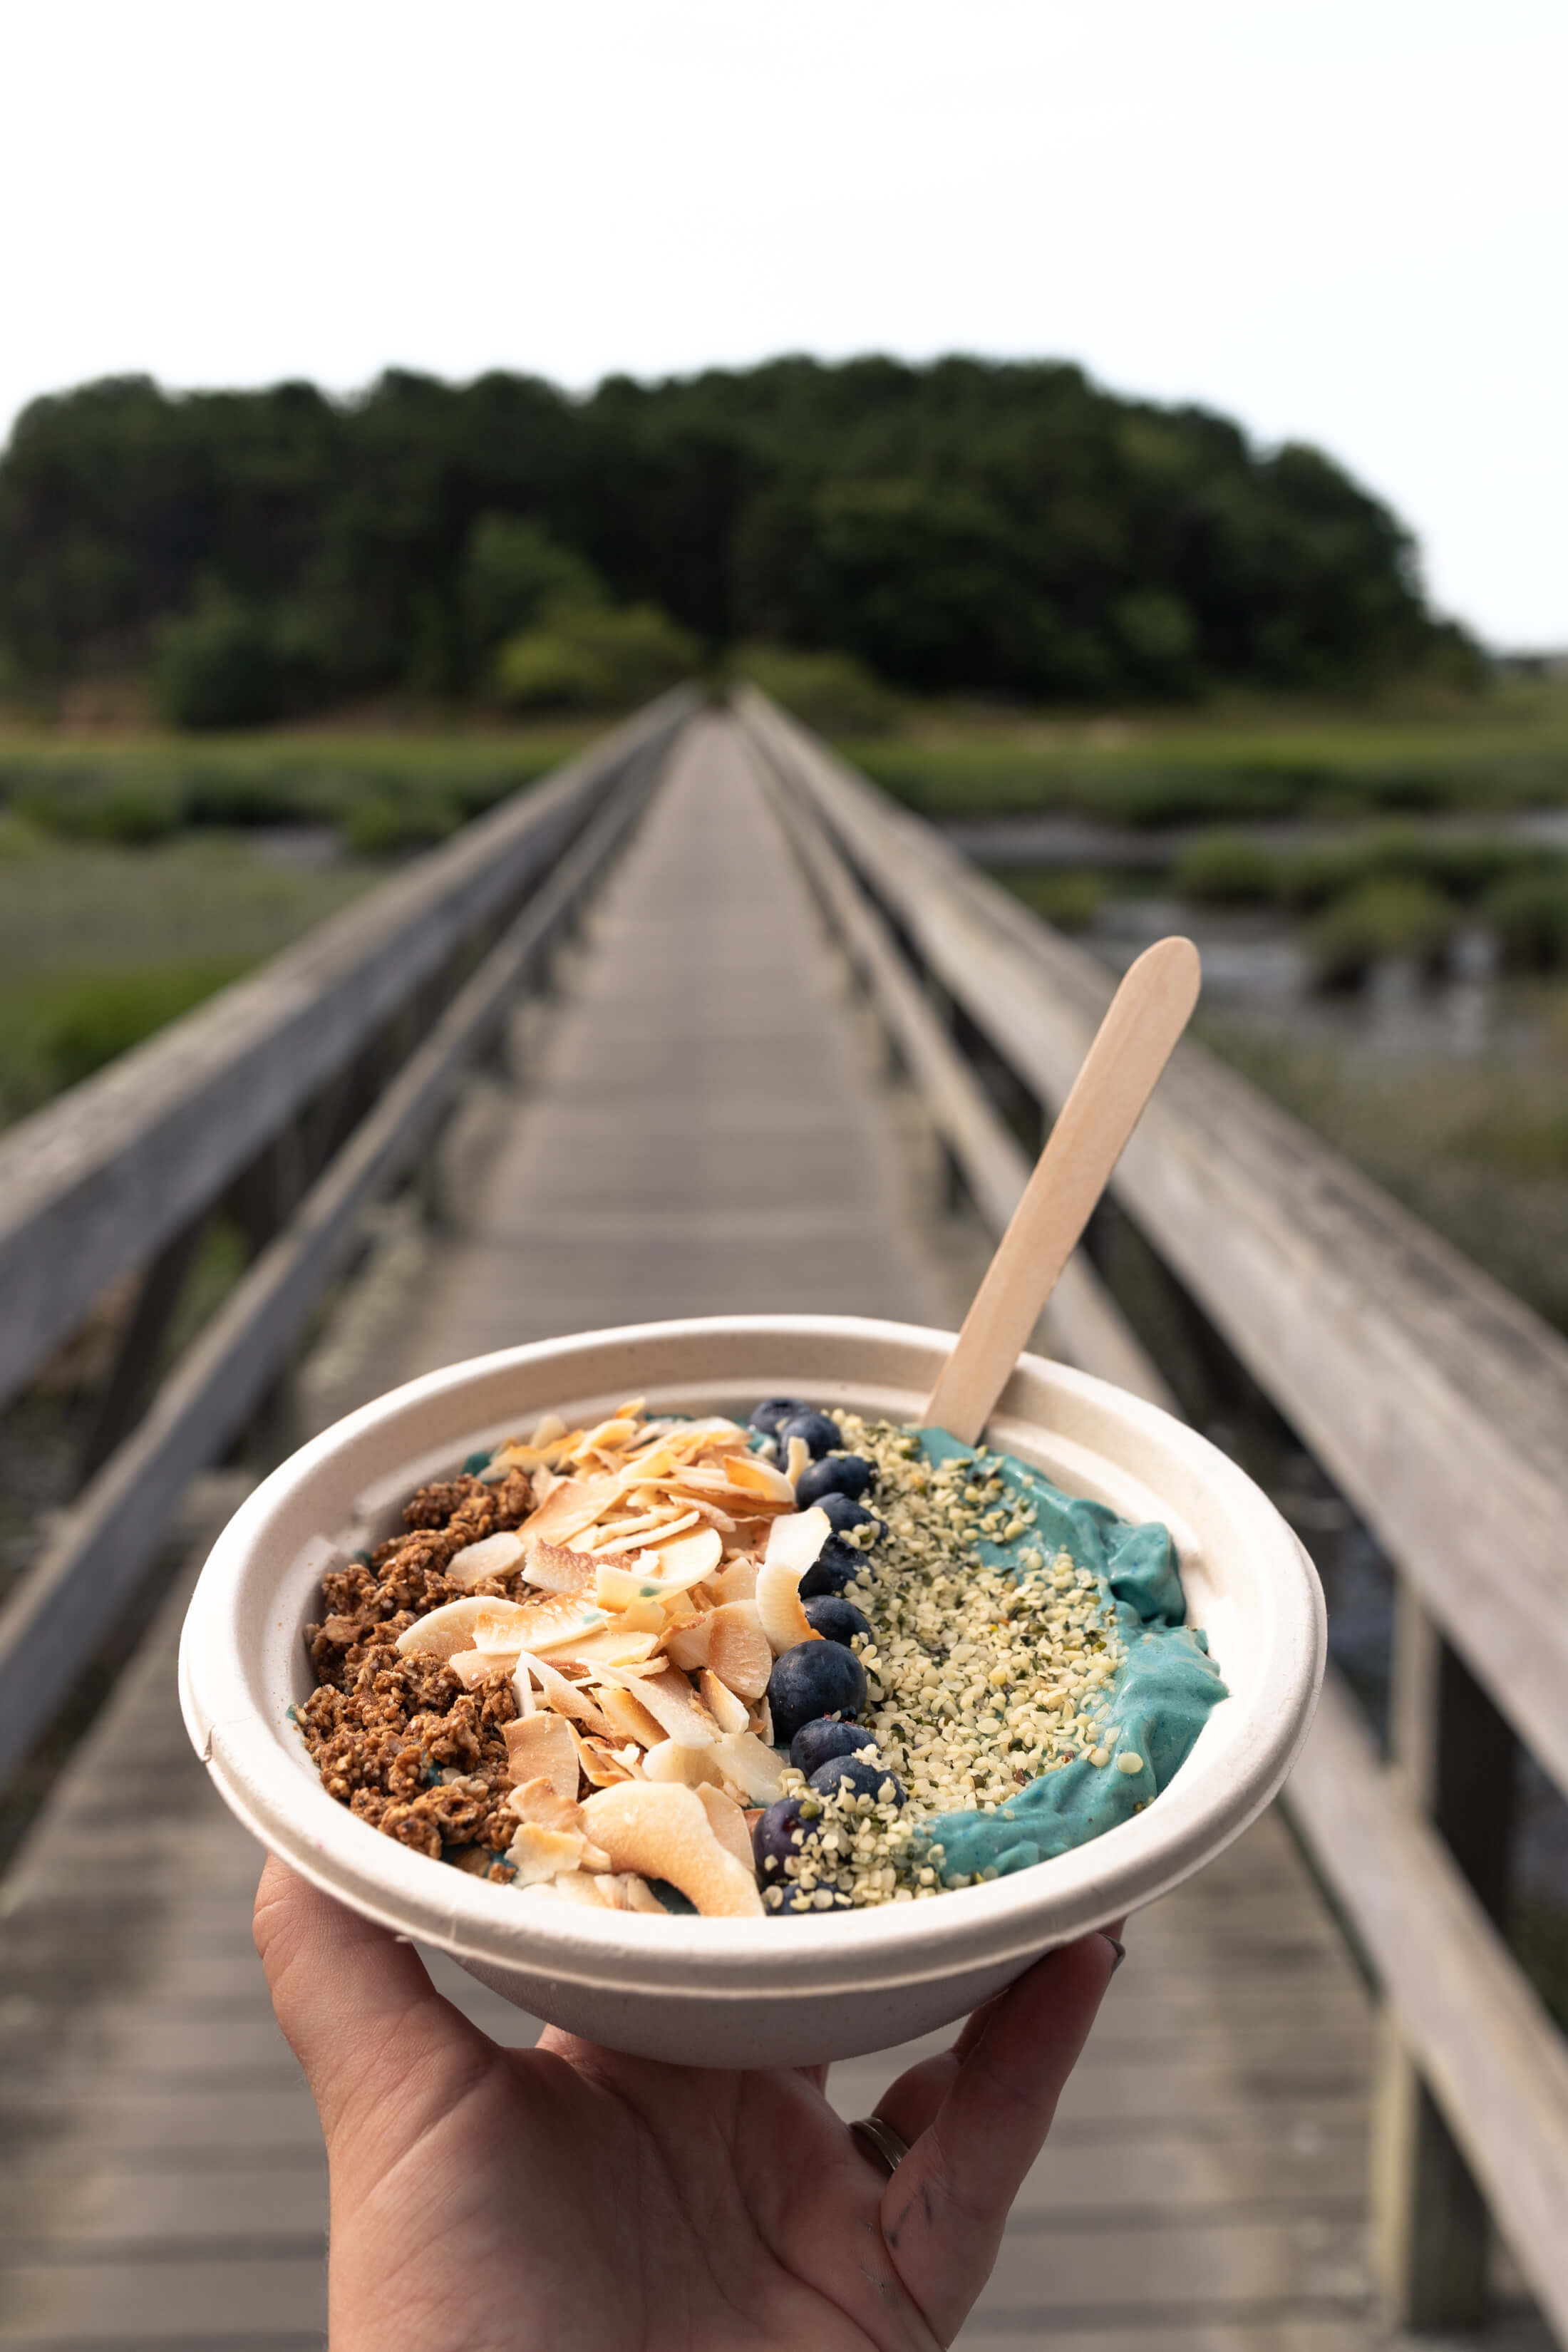 A hand holding a smoothie bowl by BŌL at Uncle Tim's Bridge in Cape Cod, Massachusetts, USA.